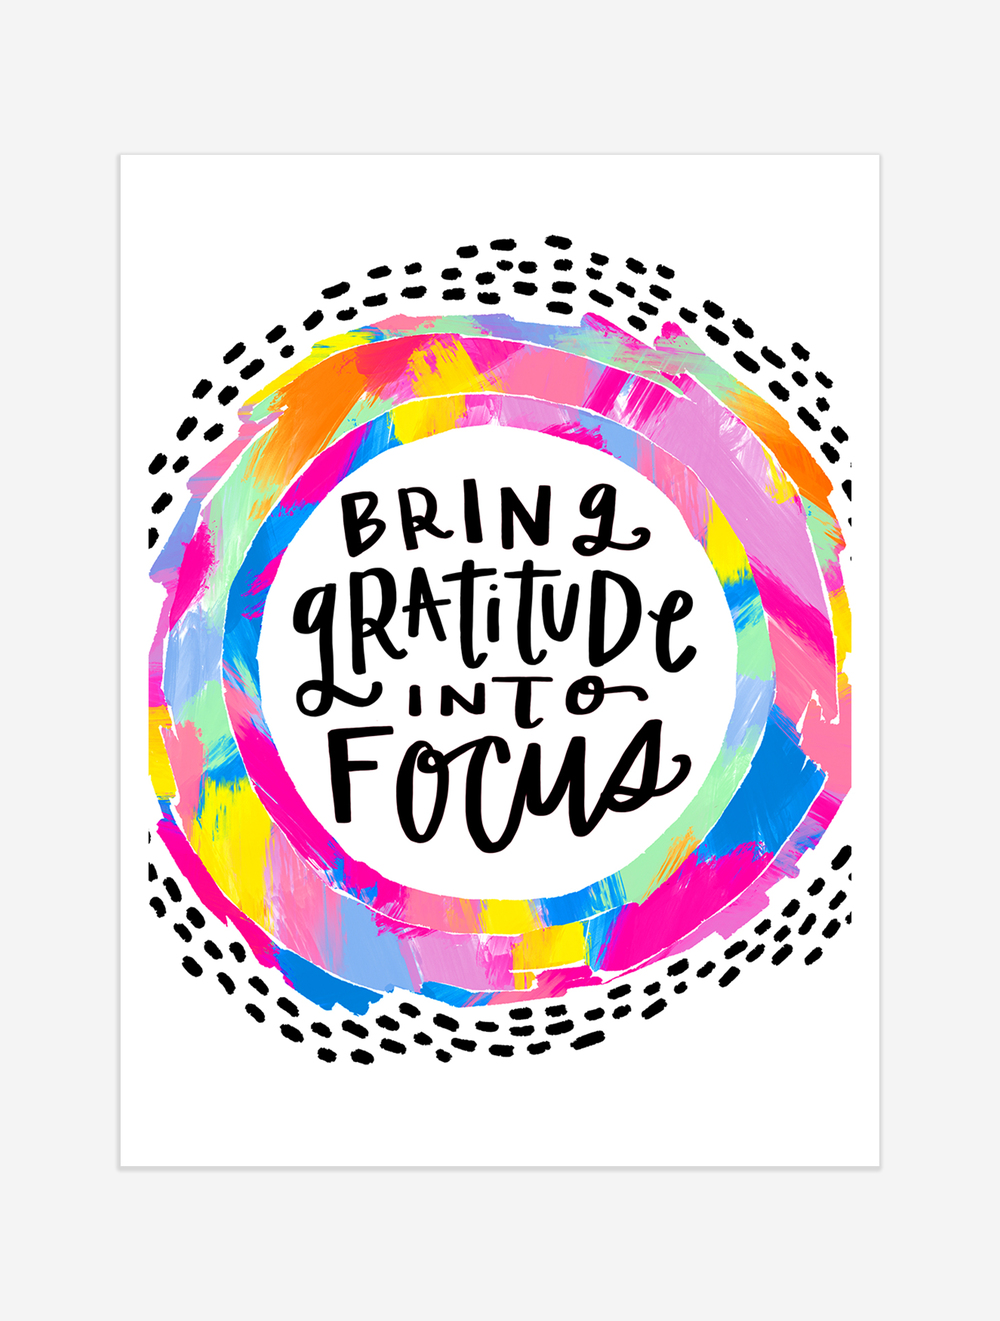 A friendly reminder to turn your attention to the simple things around you to be grateful for. $25 giclee print available at the Made Vibrant Art Shop.